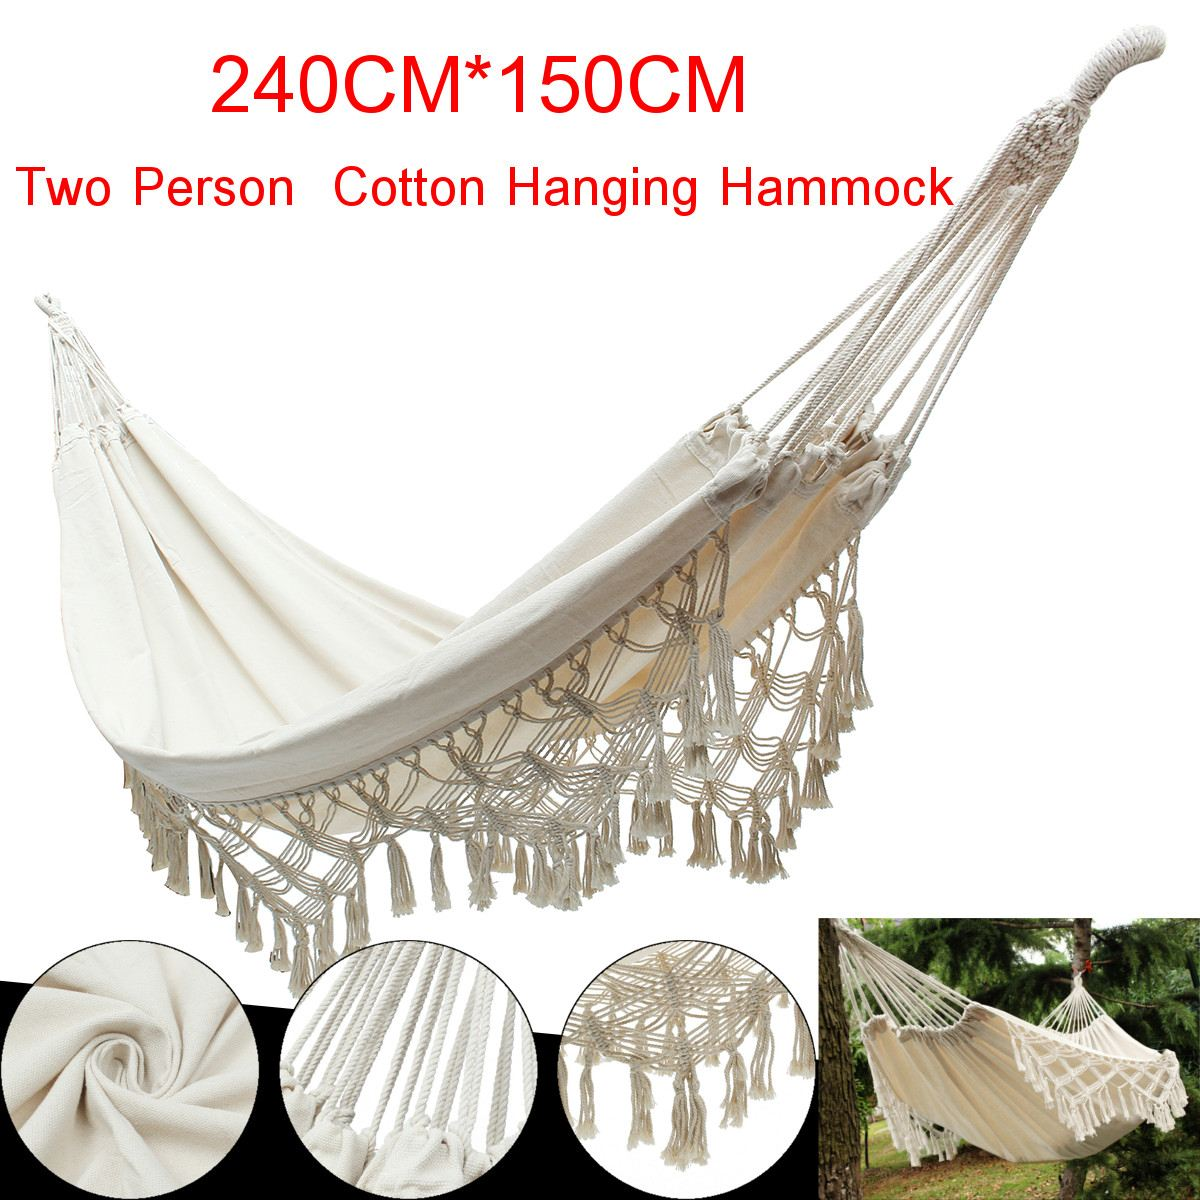 Us 29 68 41 Off Thicken Double Hammock Chairs Swing Hanging Outdoor Camping Sleep Bed Dormitory Kids Hammock Hanging Chair Home Garden Cotton In